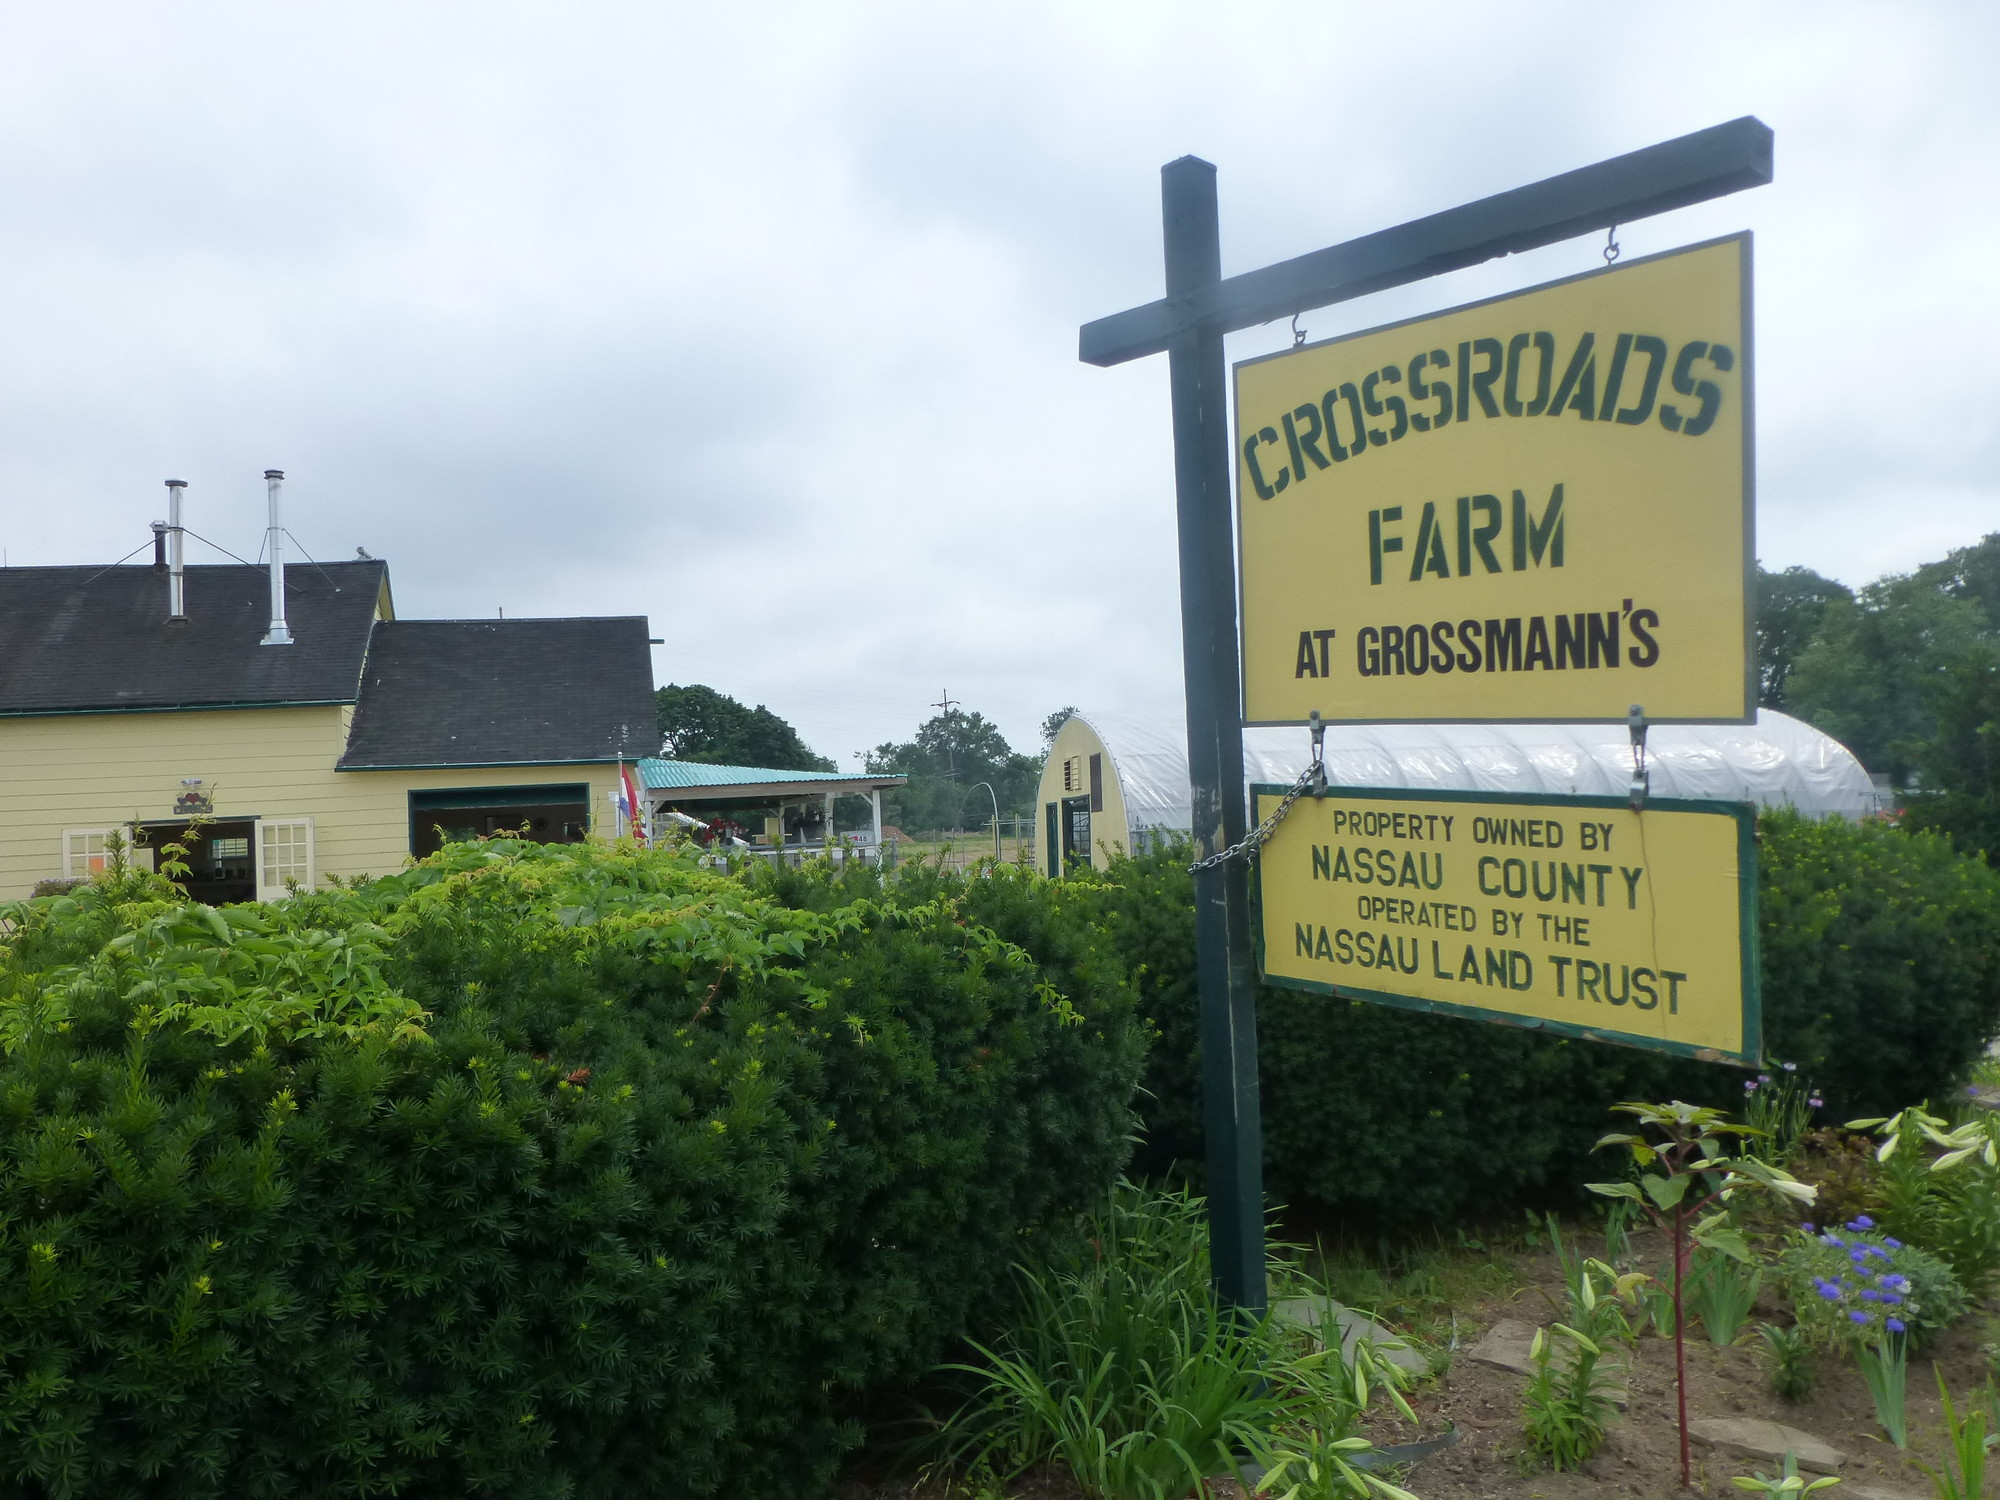 The Nassau Land Trust purchased a parcel of the Grossmann's property in 2010 to conserve the farmland and establish Crossroads, the last farm in southern Nassau County.